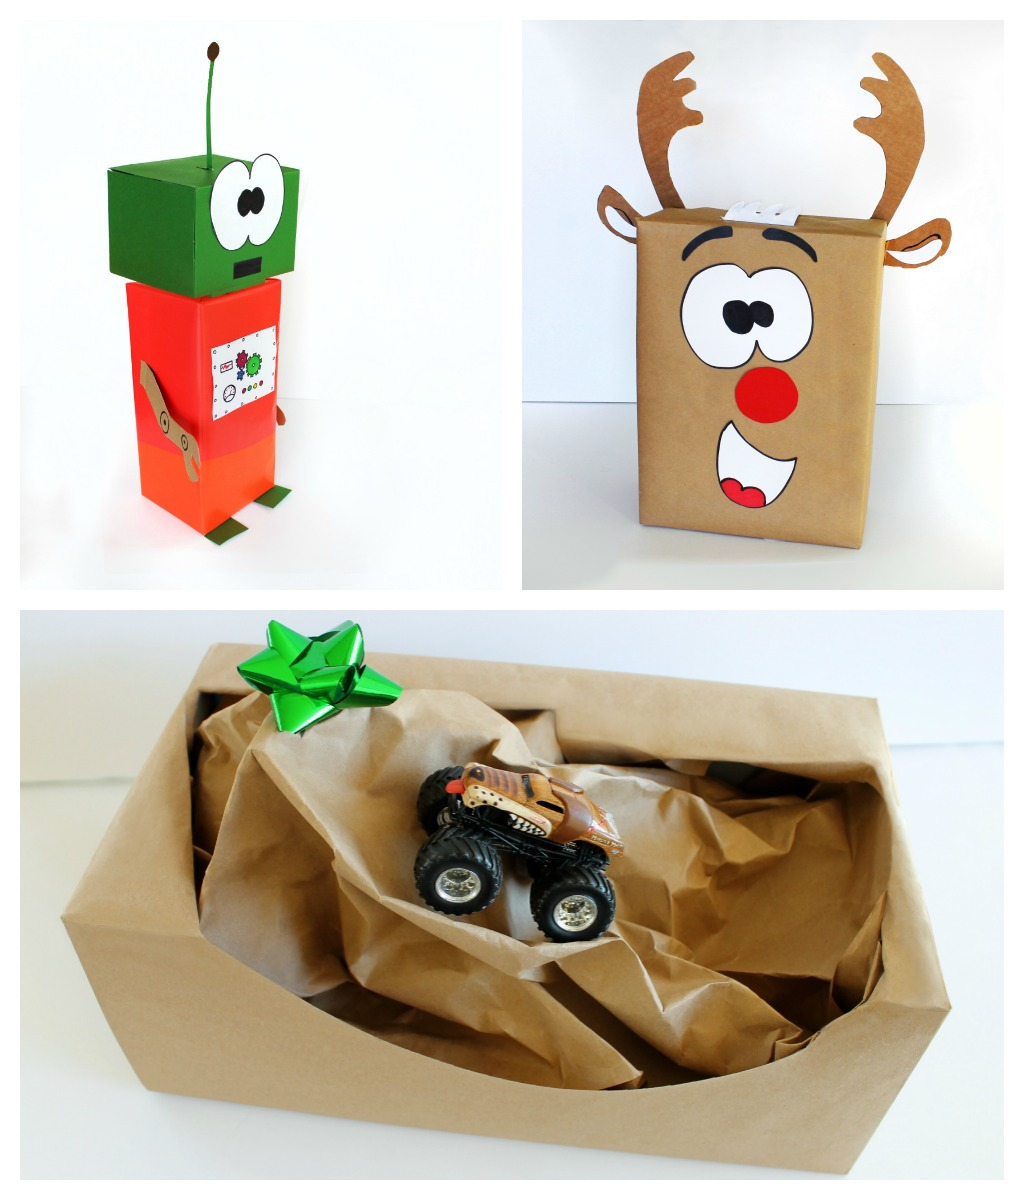 Fullsize Of Creative Gift Packaging